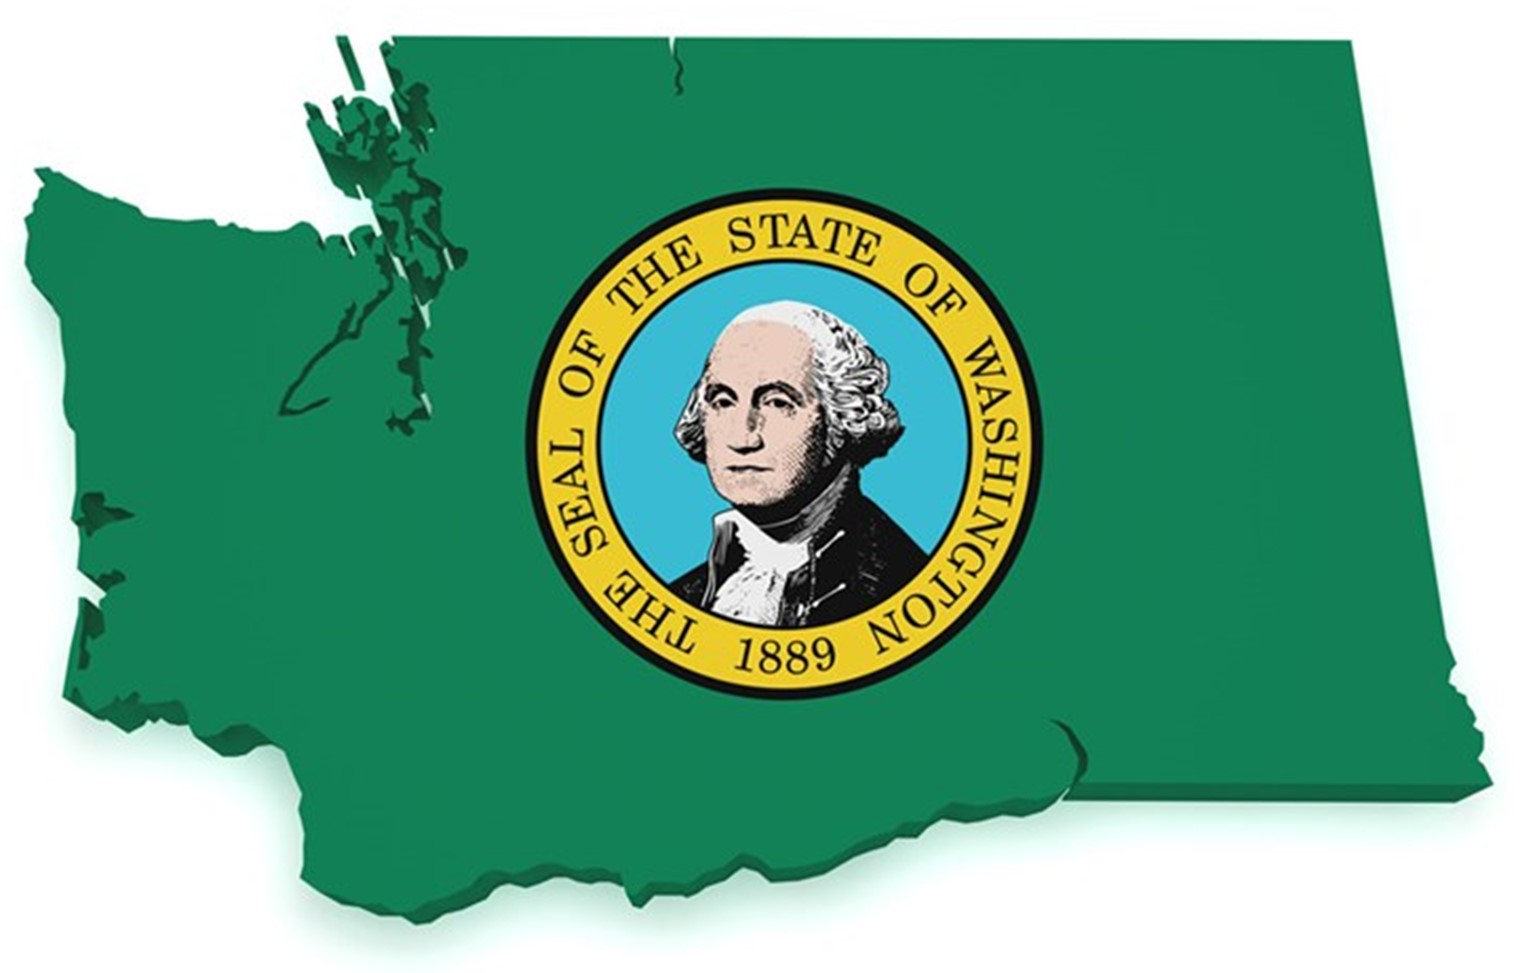 State of Washington outline with the state seal in the center